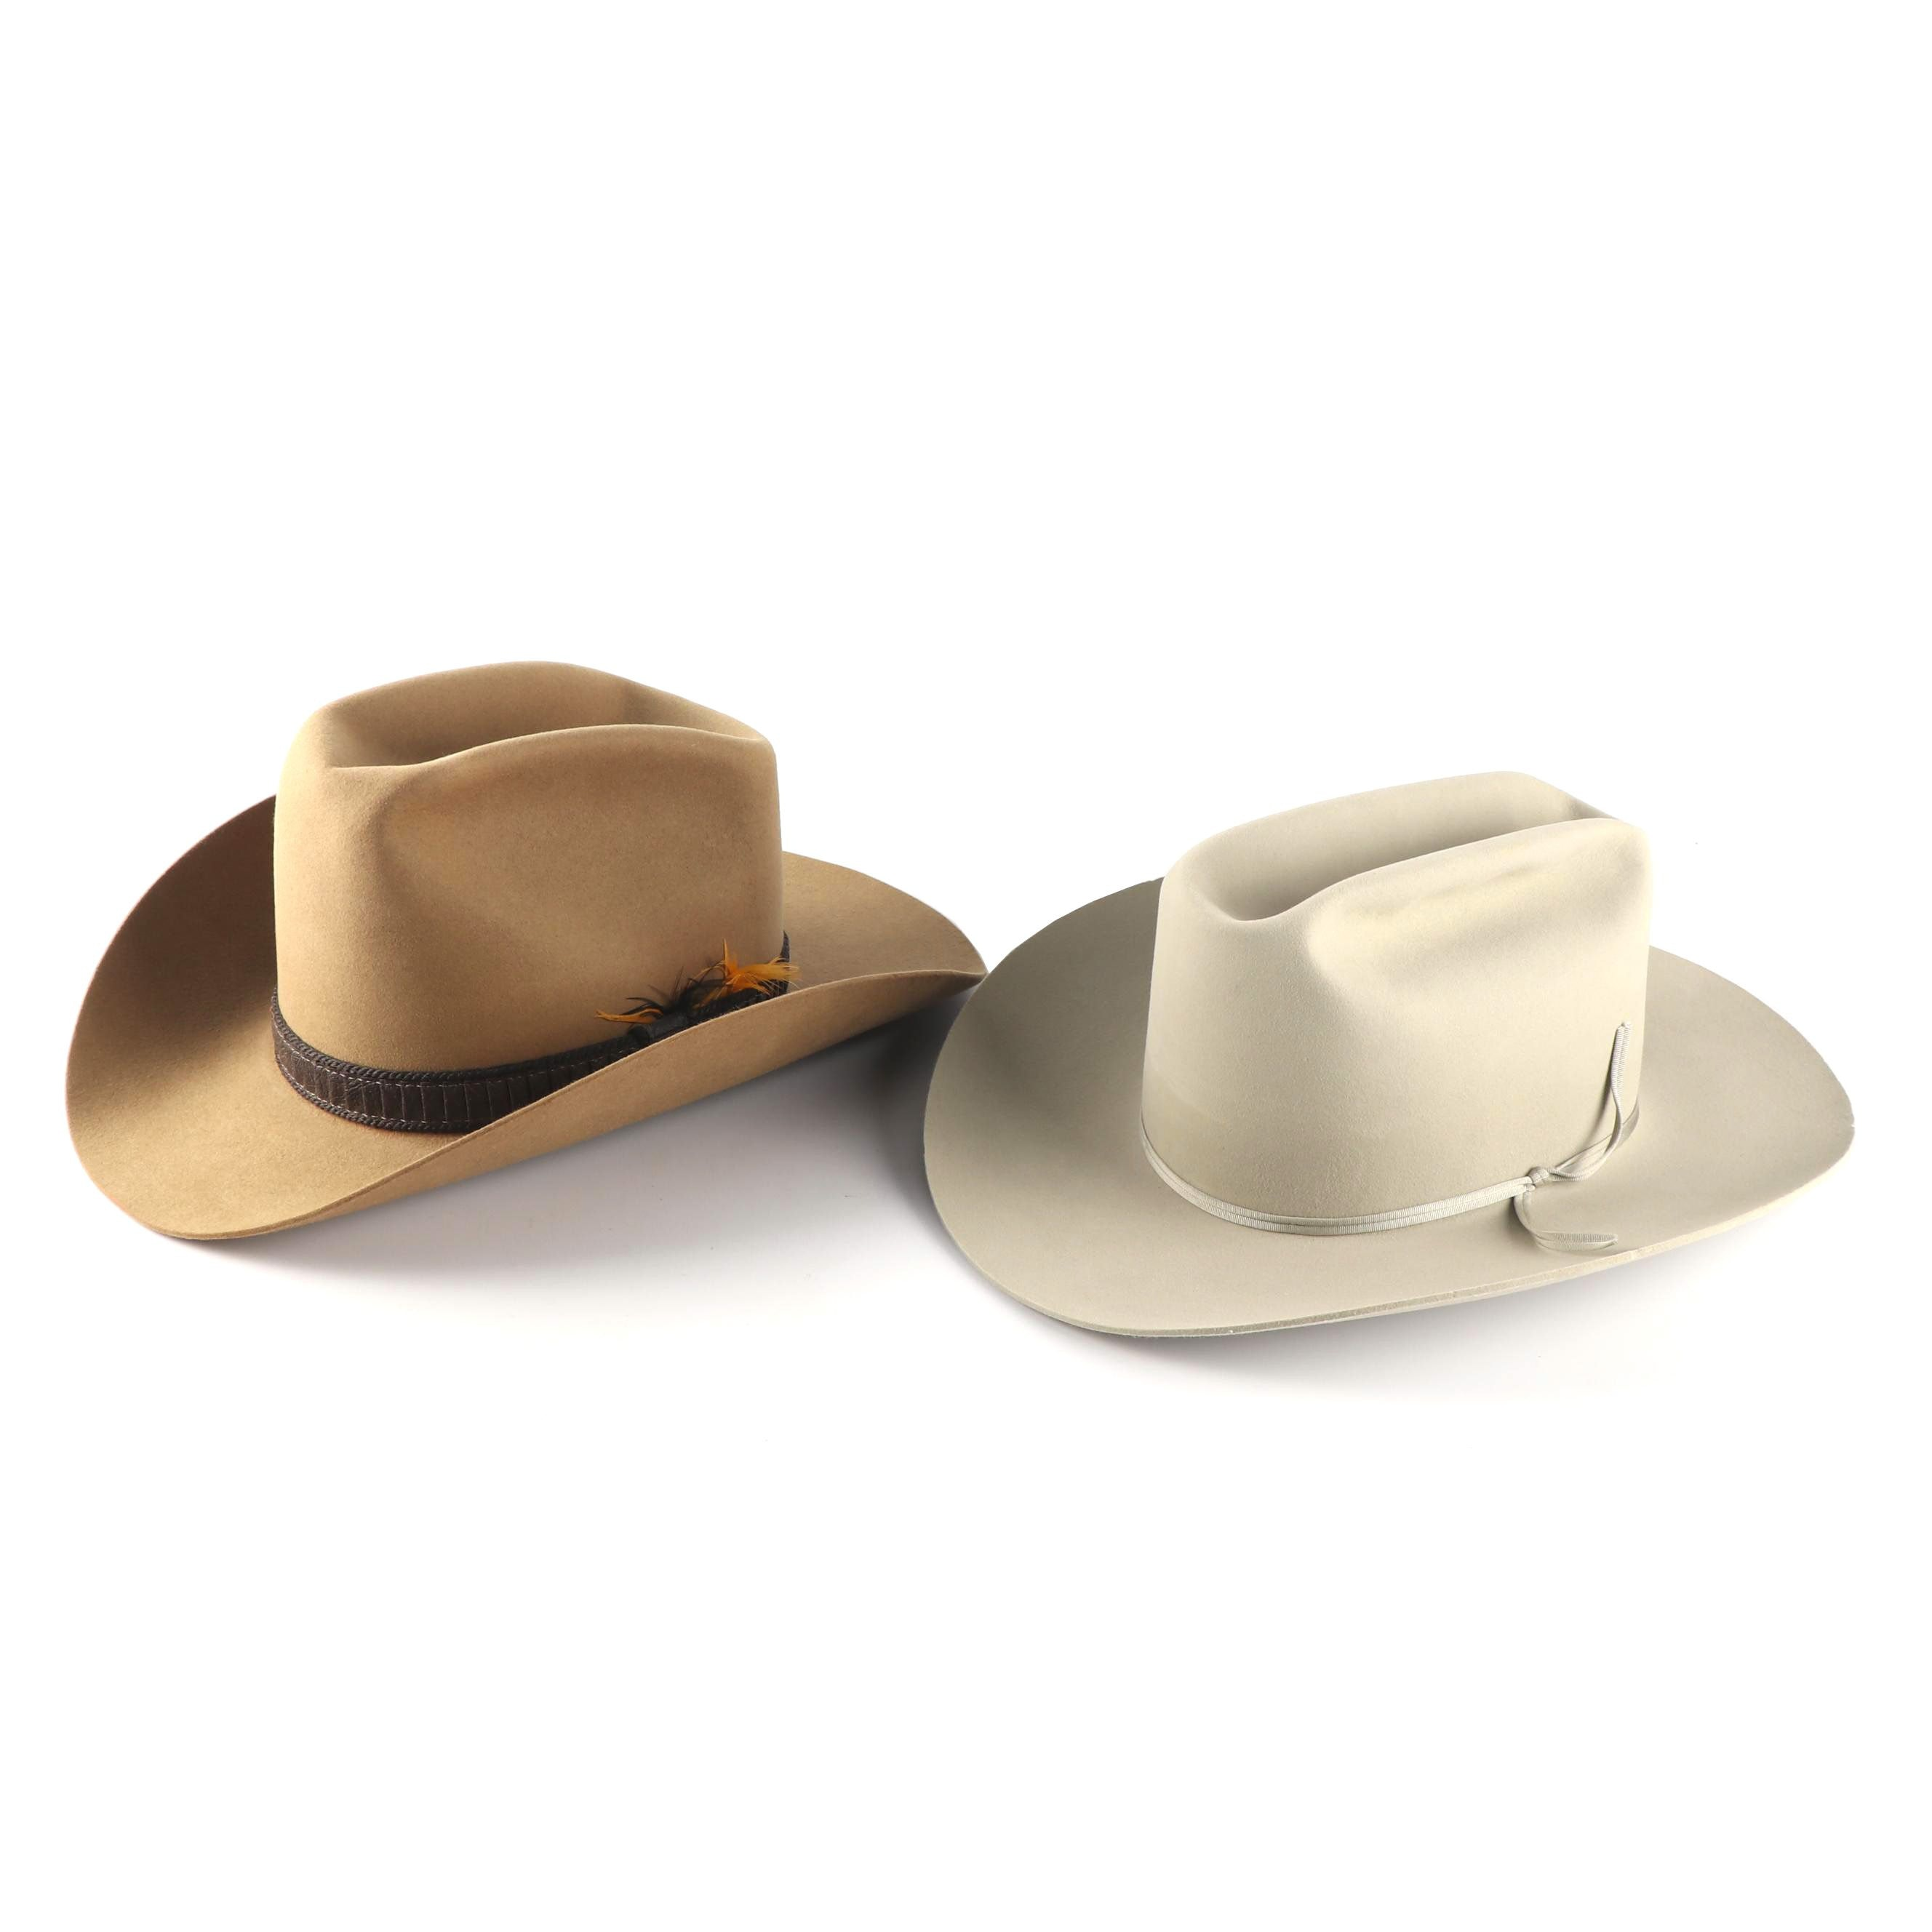 Men's Thoroughbred 10X Felted and Bradford 5X Beaver Felted Cowboy Hats